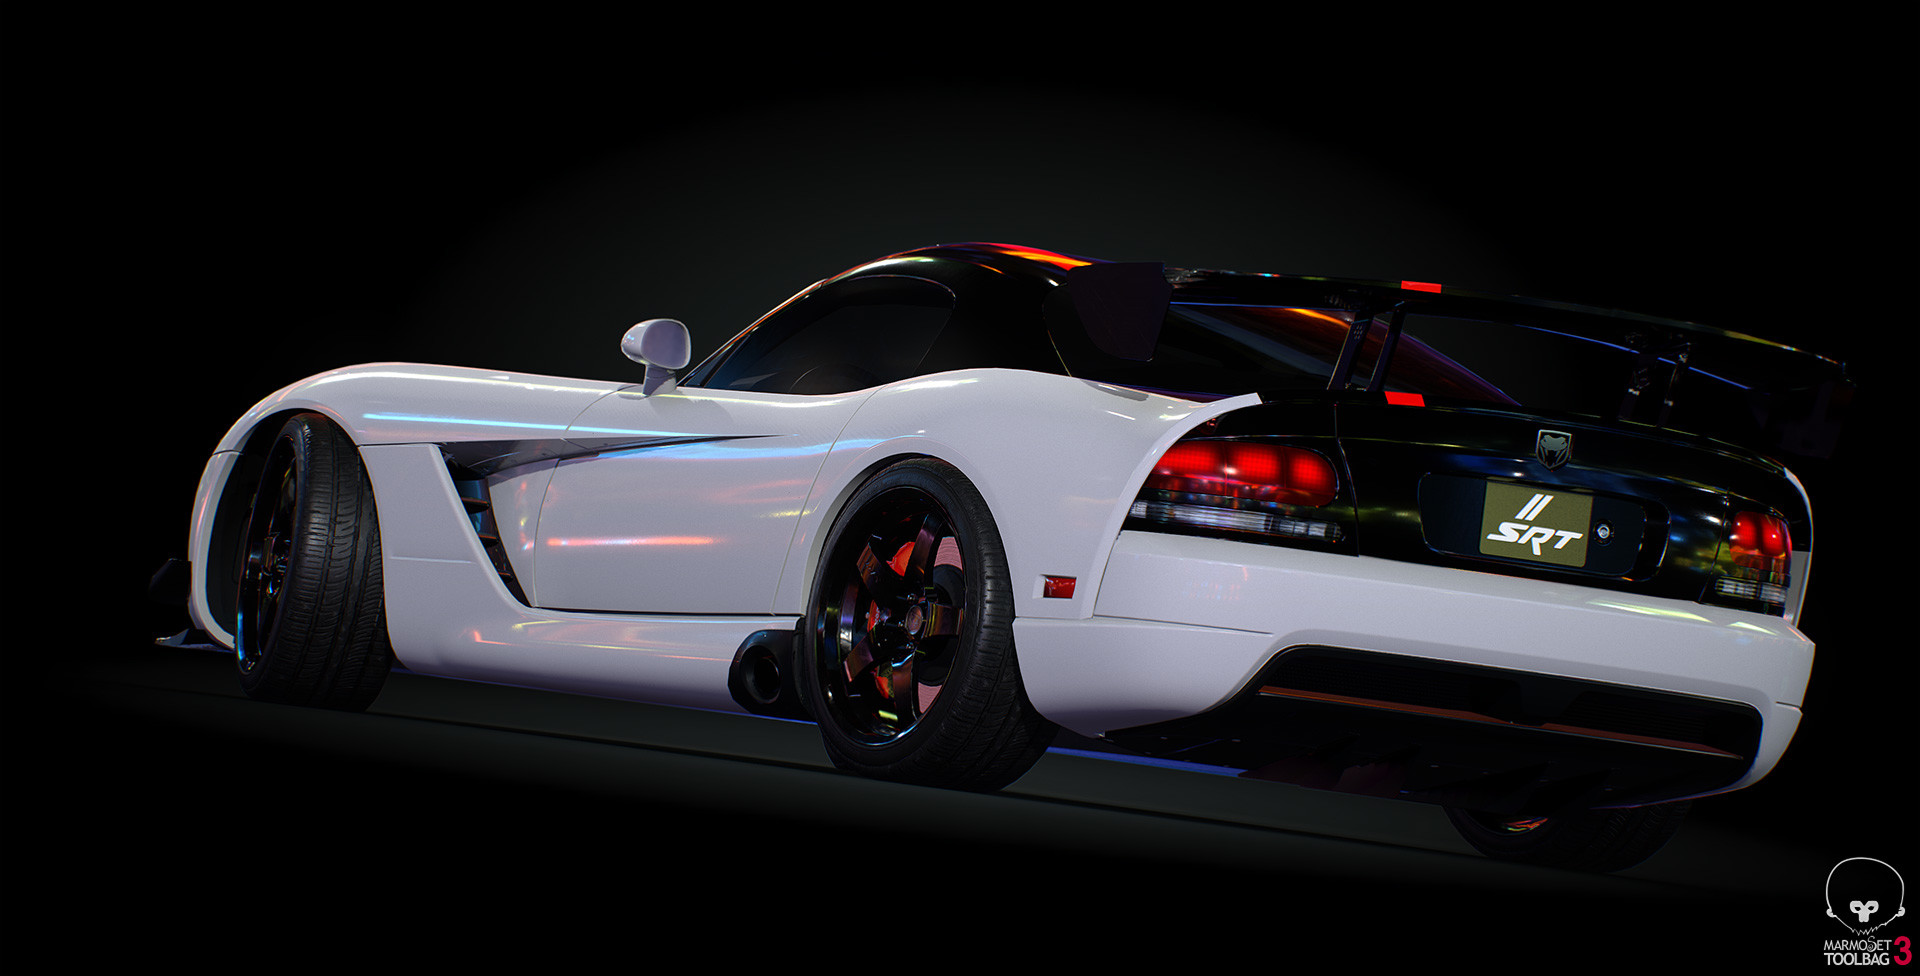 David letondor dodgeviper srt10 david letondor v1 4